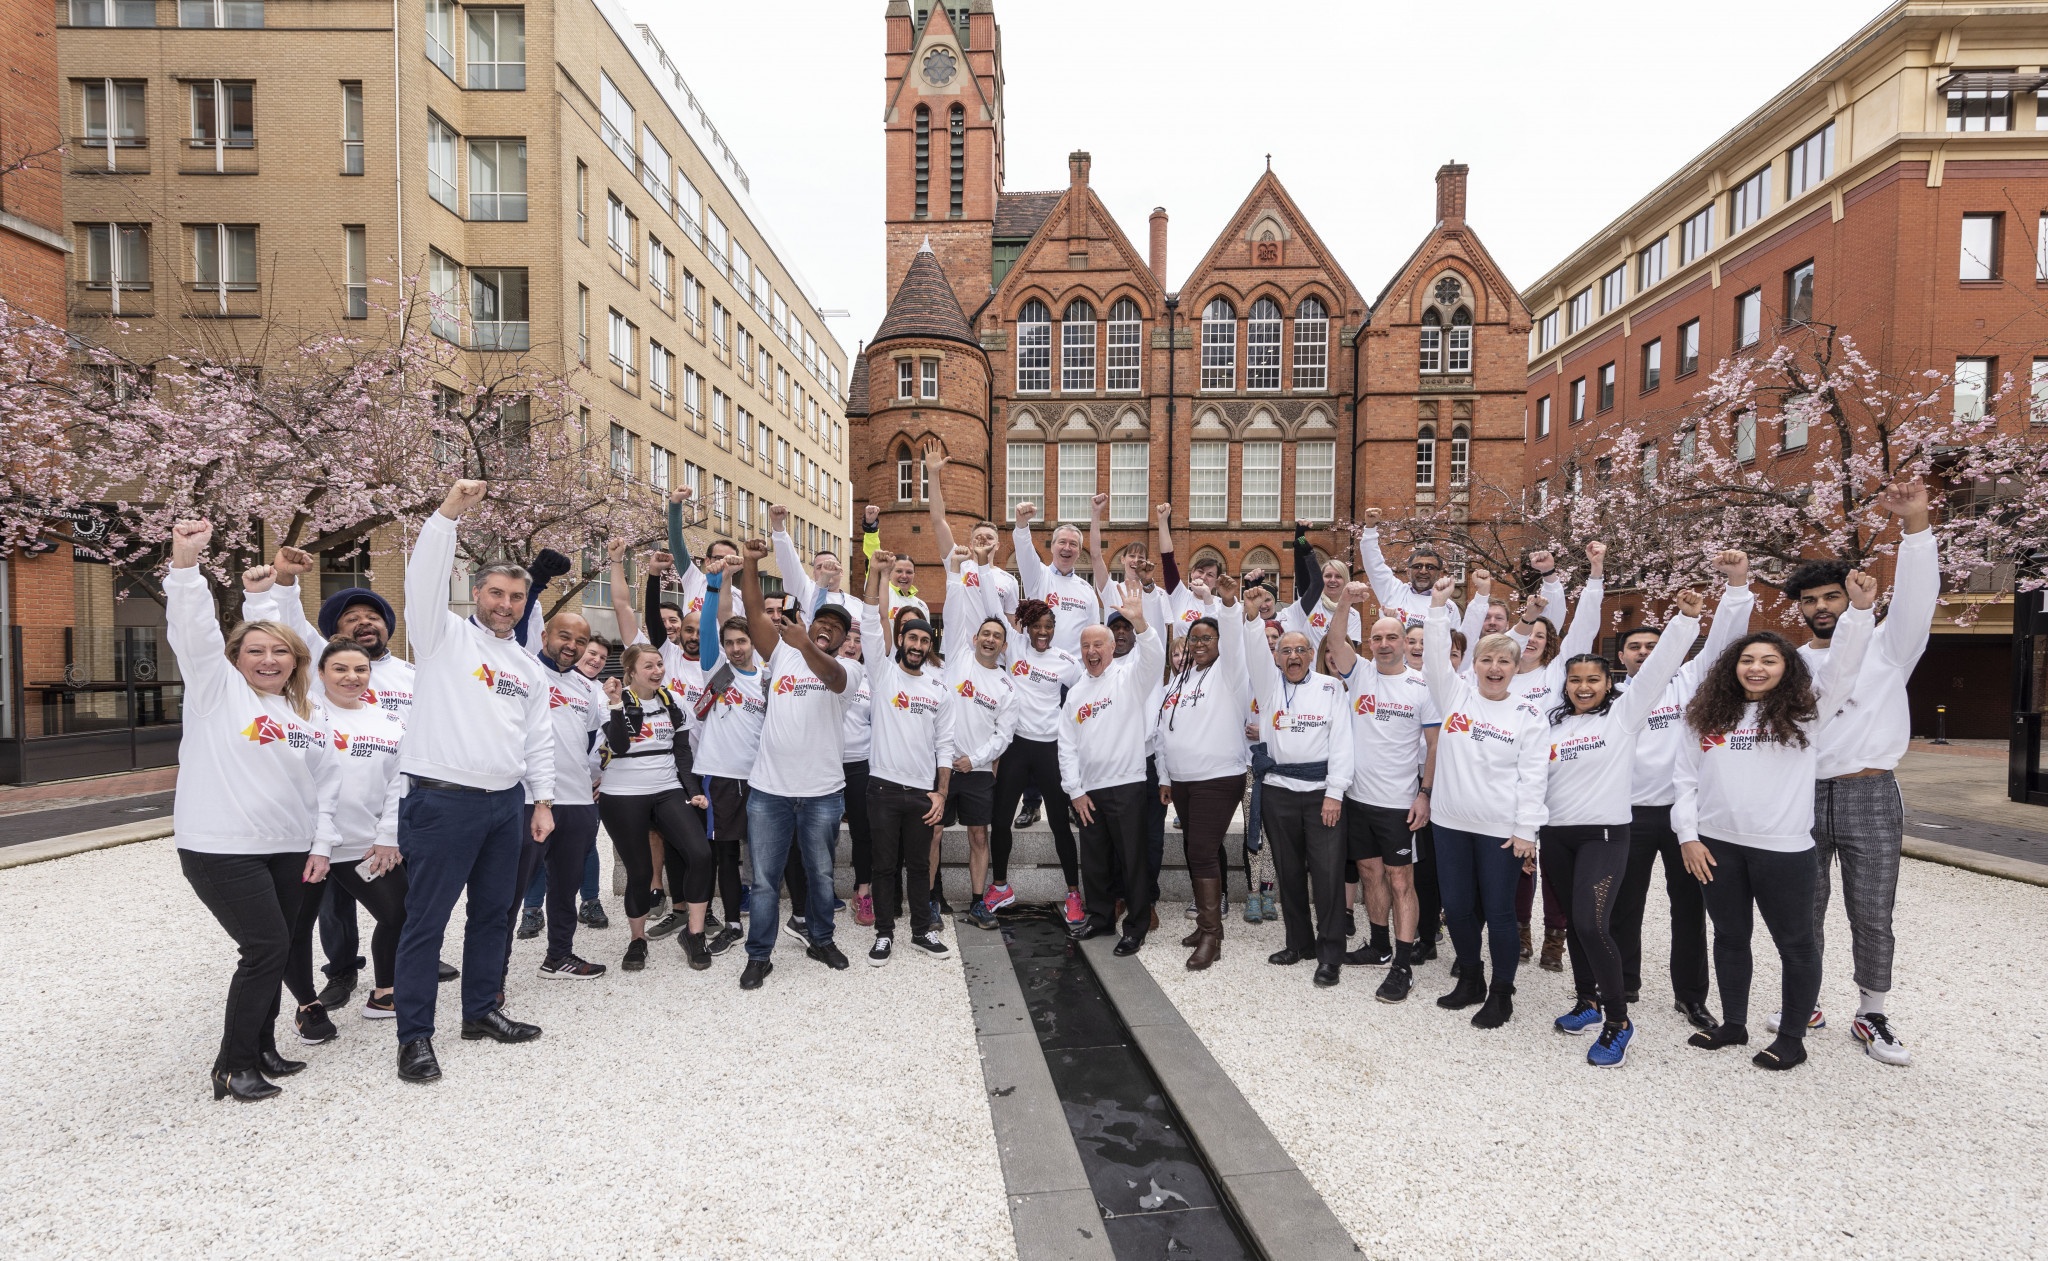 The United by Birmingham 2022 programme has welcomed 21 new projects on board ©Getty Images